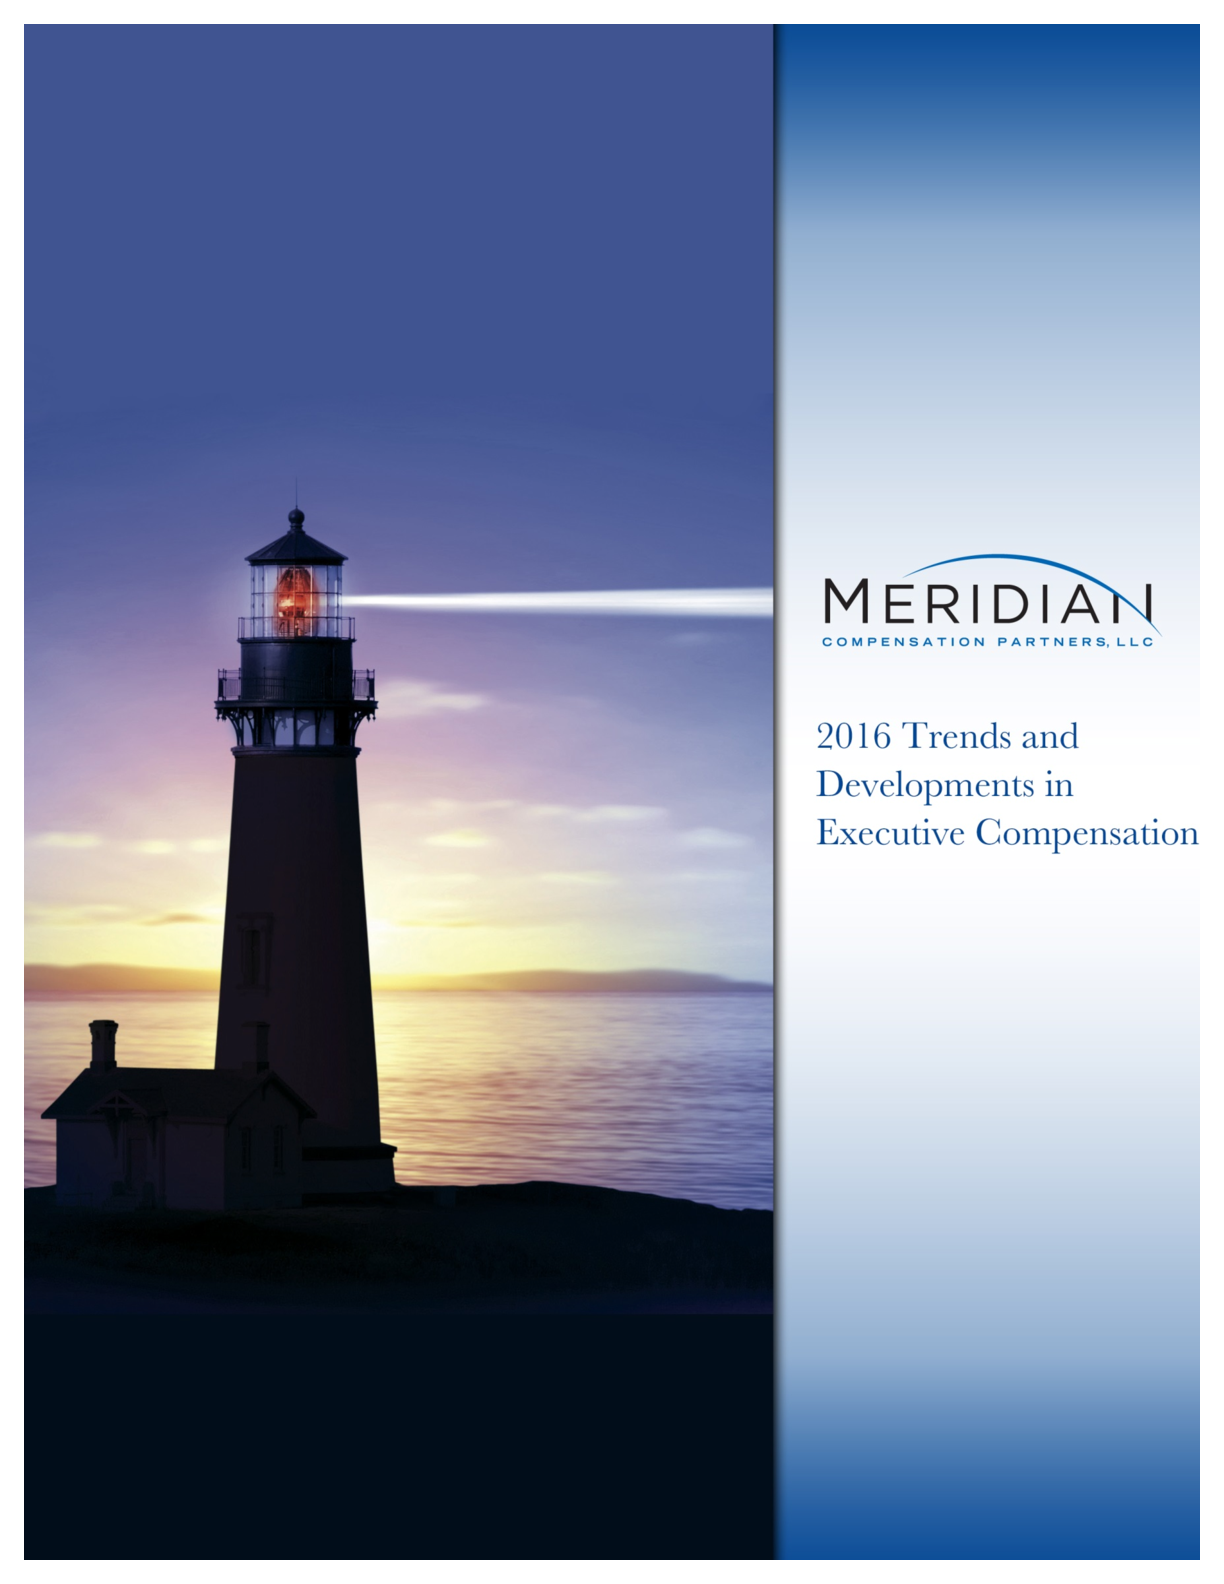 2016 Trends and Developments in Executive Compensation (PDF)